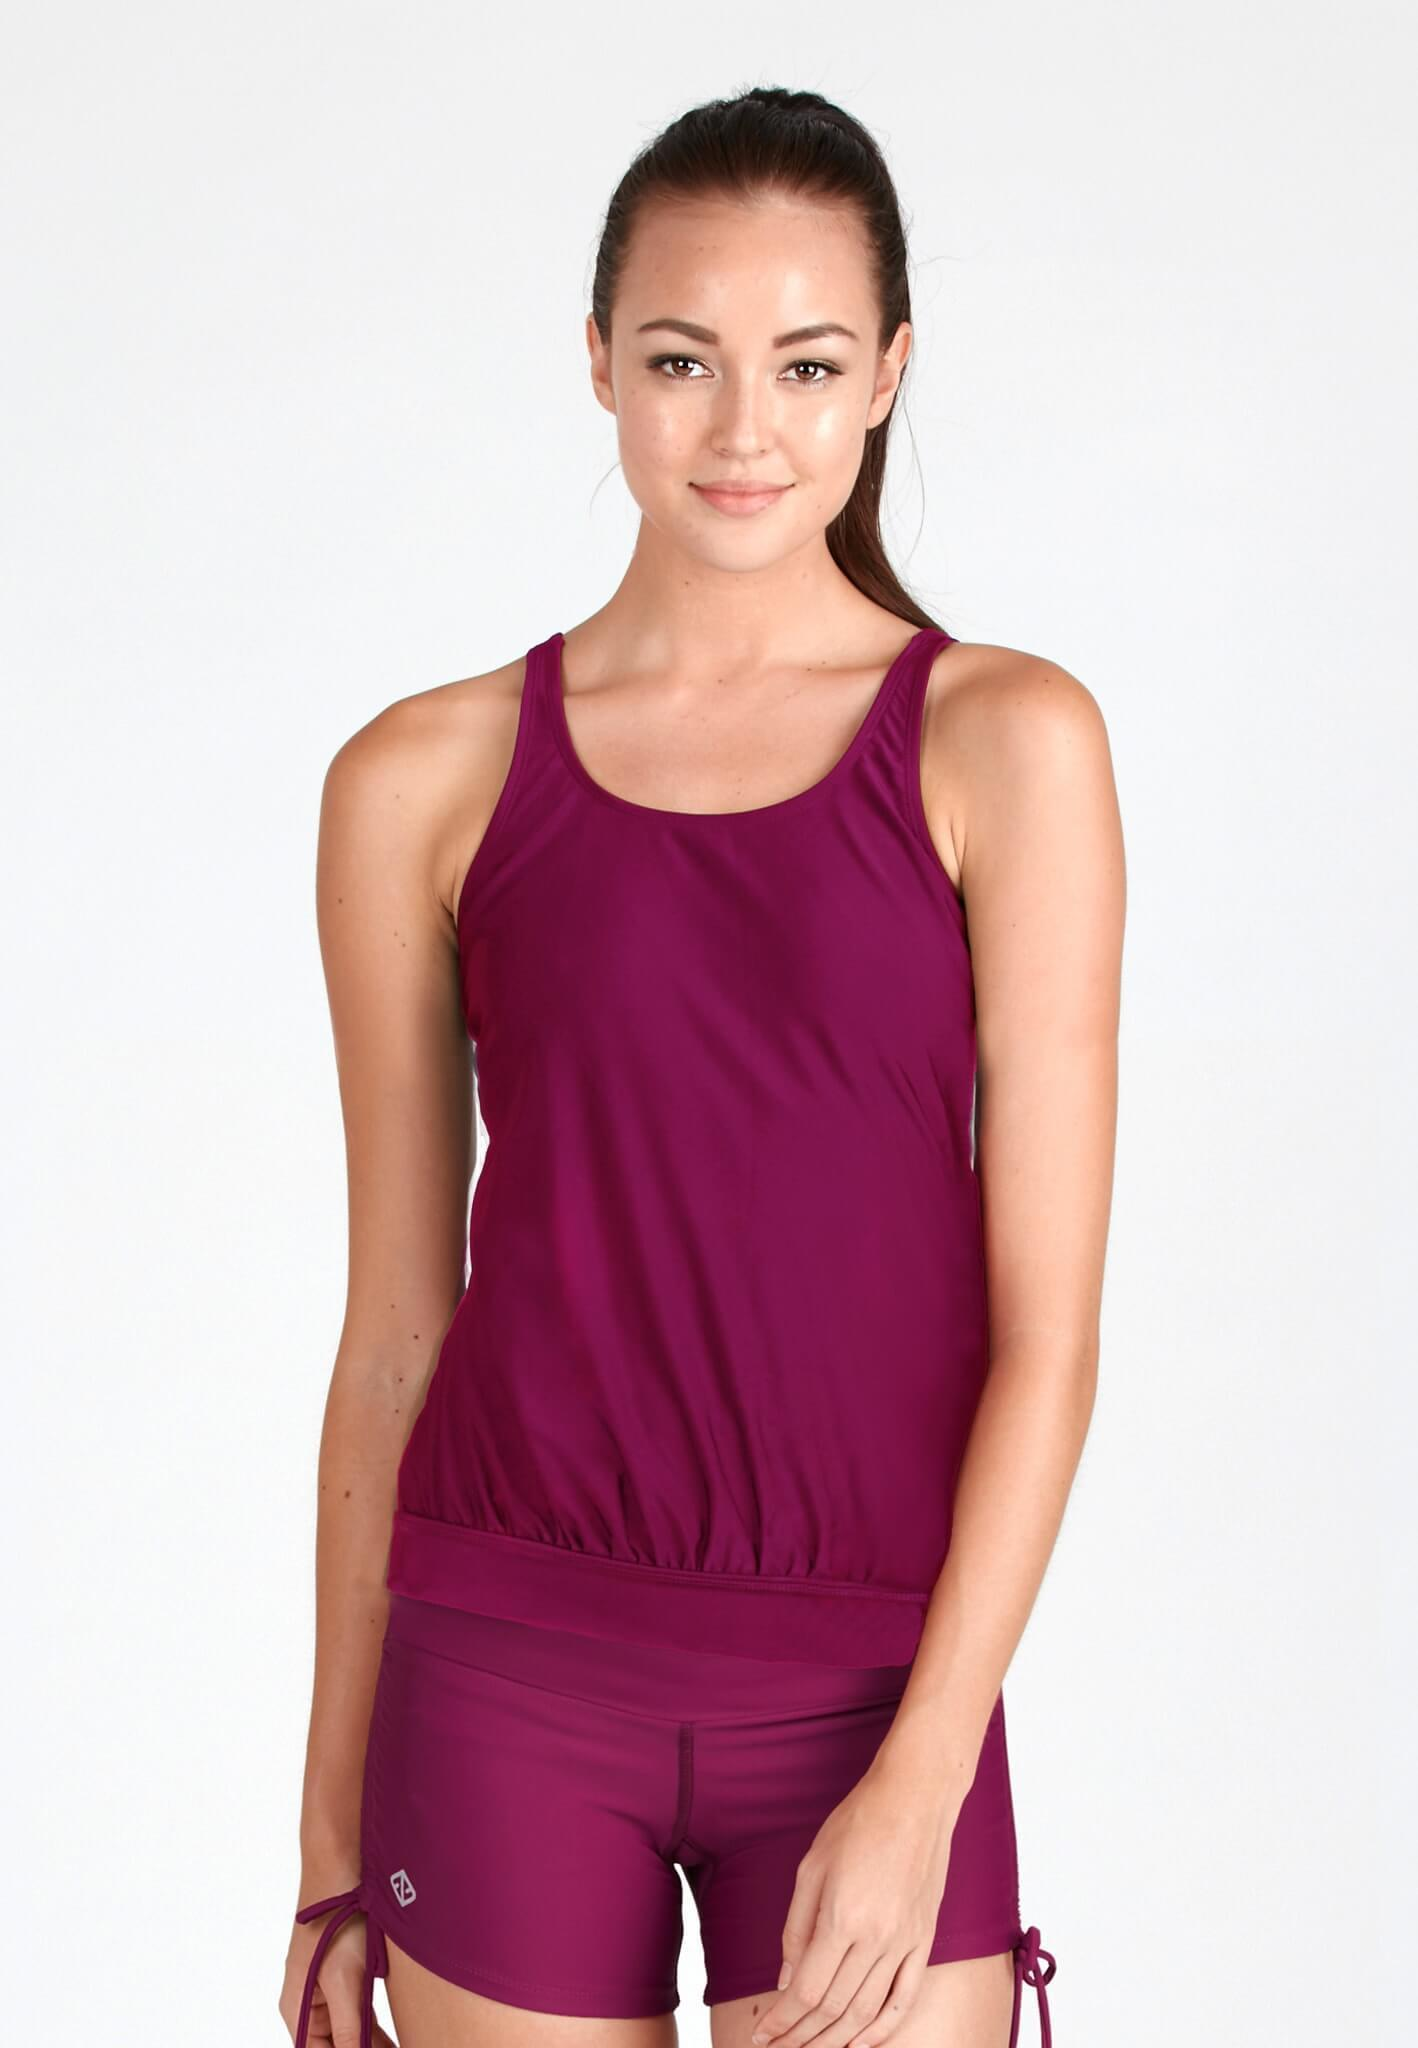 Hemmed Blouson Tankini Top in Mulberry - FUNFIT